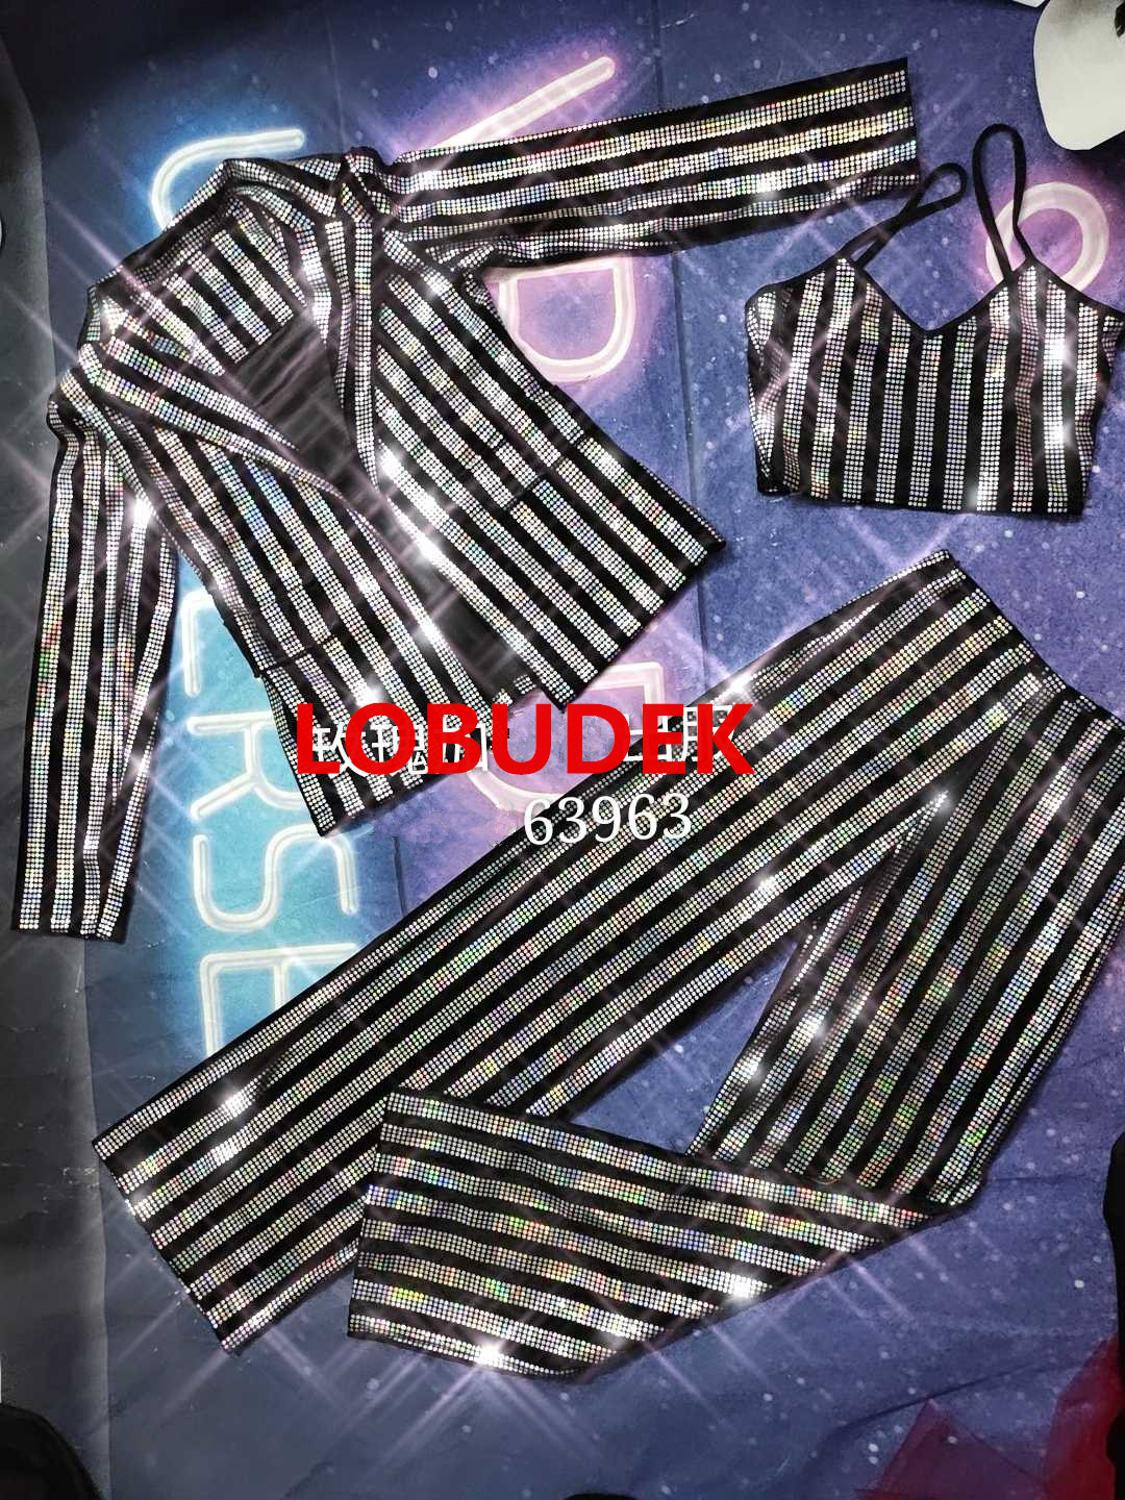 Female Bar Singer Performance Suit Set Silver Black Striped Rhinestones Bra Pants Jacket 3-Piece Outfit Nightclub Stage Costume